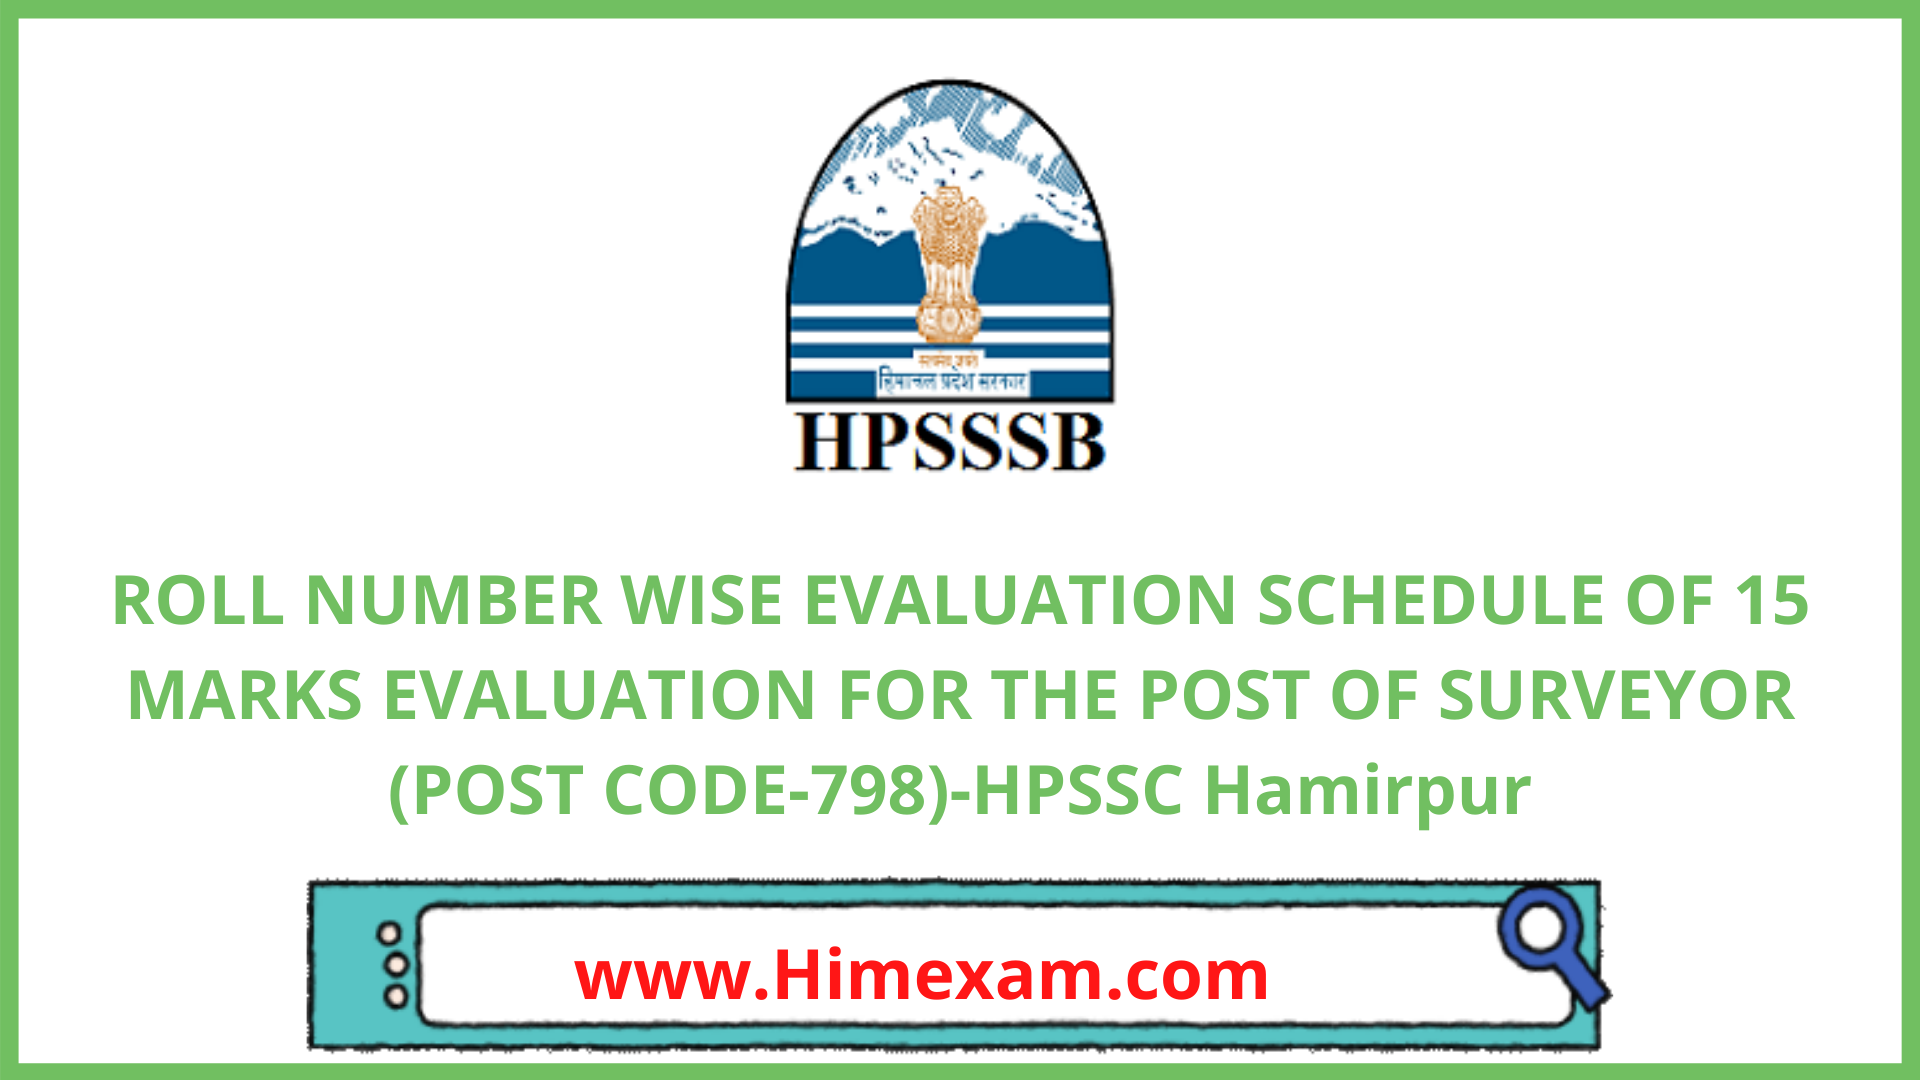 ROLL NUMBER WISE EVALUATION SCHEDULE OF 15 MARKS EVALUATION FOR THE POST OF SURVEYOR (POST CODE-798)-HPSSC Hamirpur